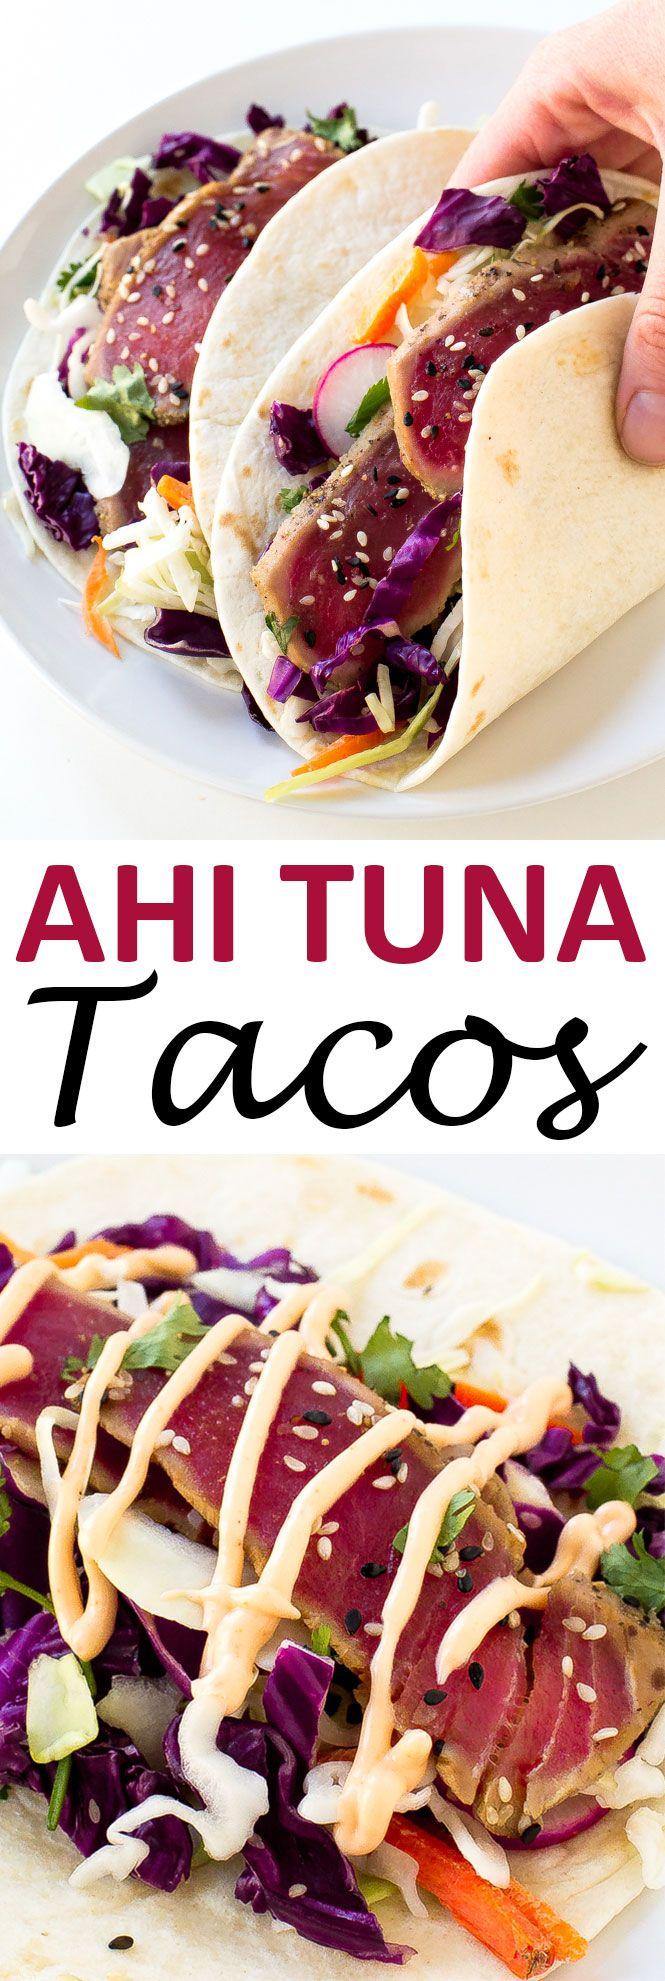 Ahi Tuna Tacos loaded with cabbage, cilantro, radishes and topped with a spicy sriracha mayo. | chefsavvy.com #recipe #ahi #una #tacos #seafood